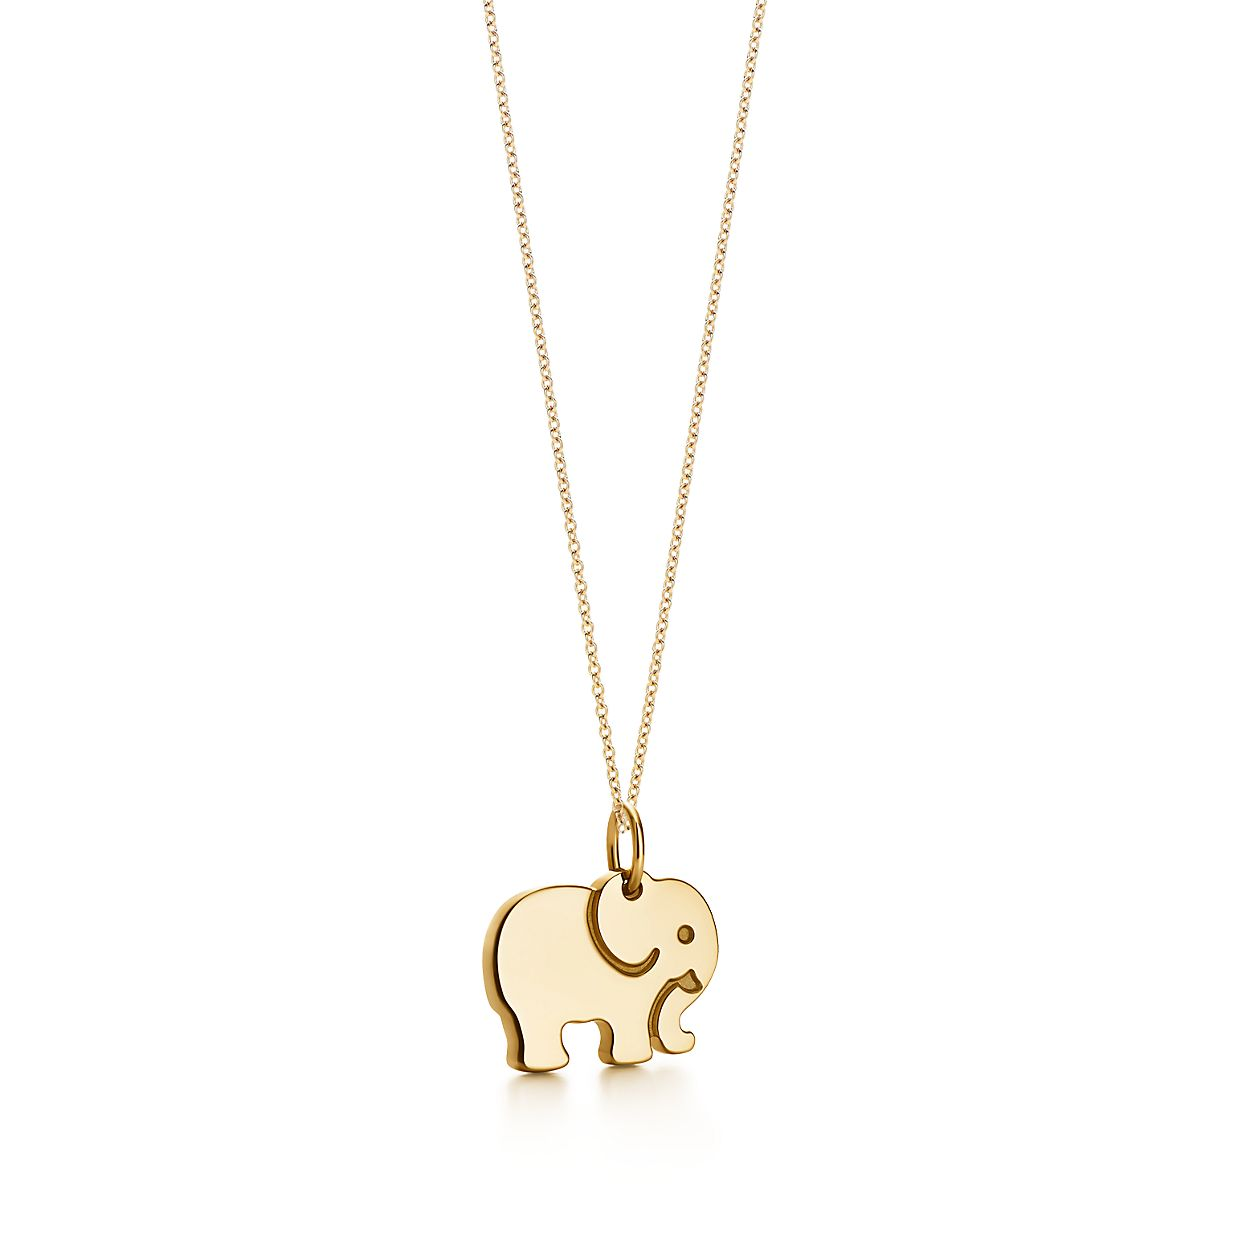 products dealzonlinedirect v large necklace collections steel elephant stainless pendants com pendant